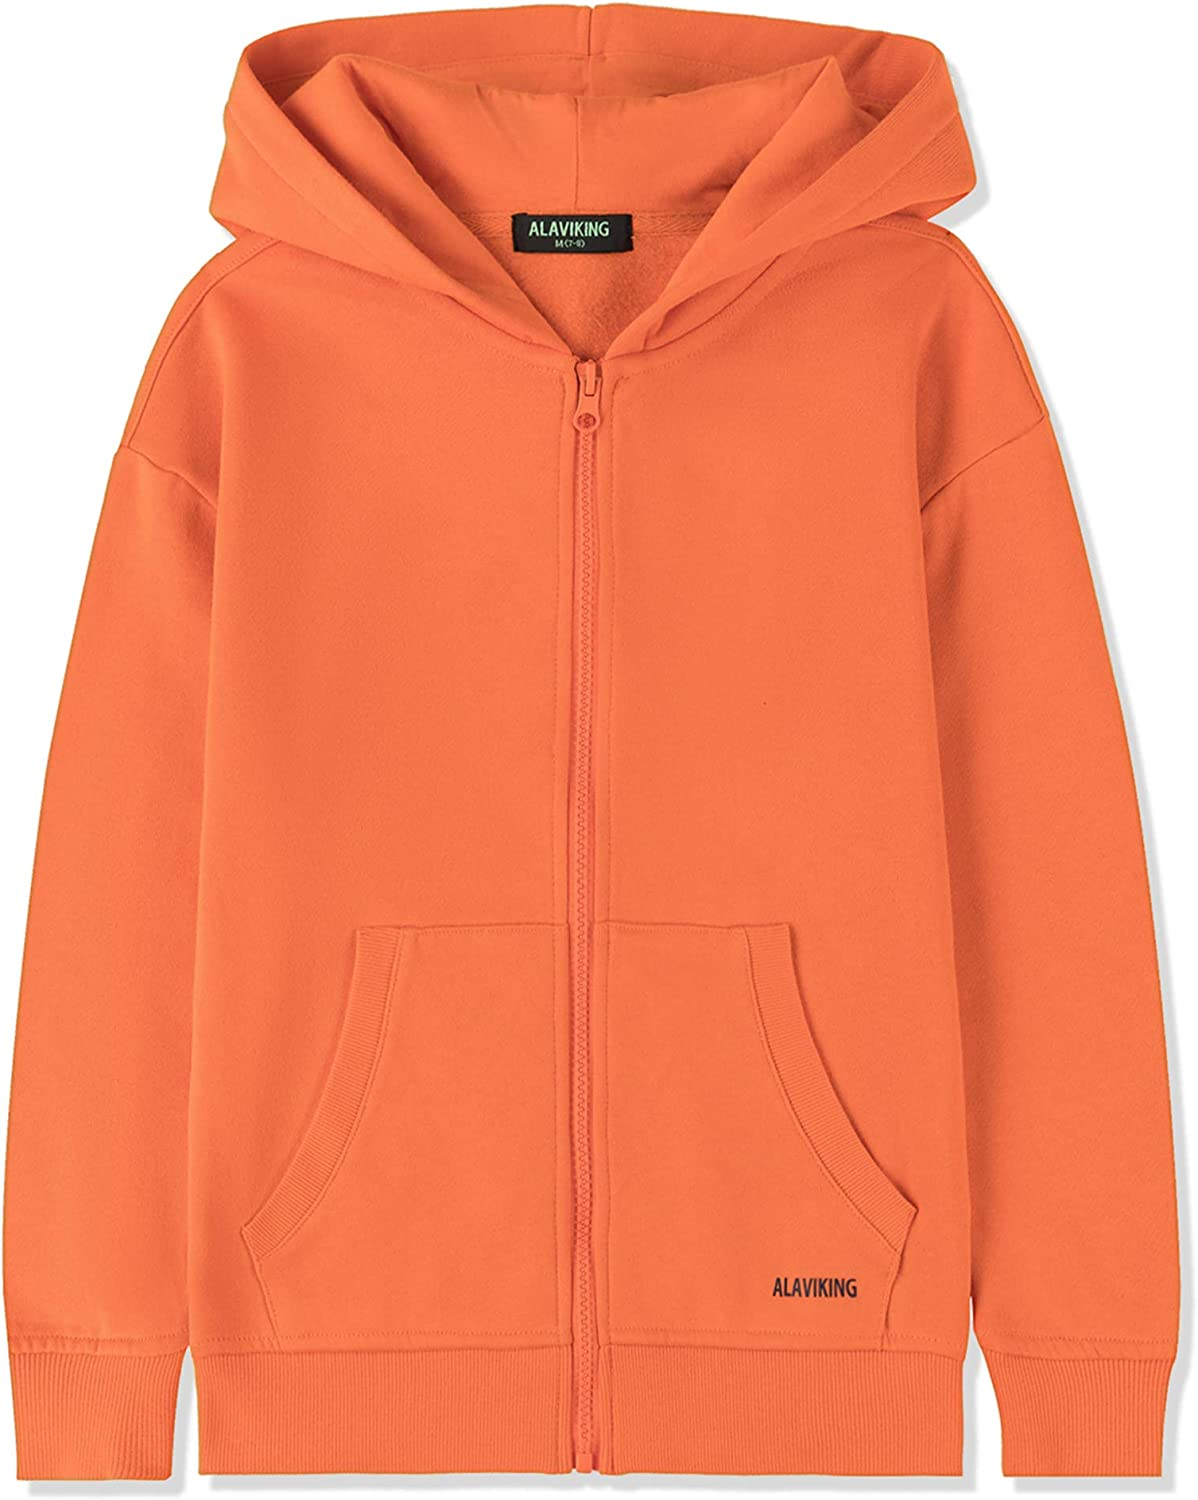 ALAVIKING Kids Soft Brushed Fleece Zip Up Hoodie Casual Athletic Hooded Sweatshirts for Boys and Girls 3-12 Years